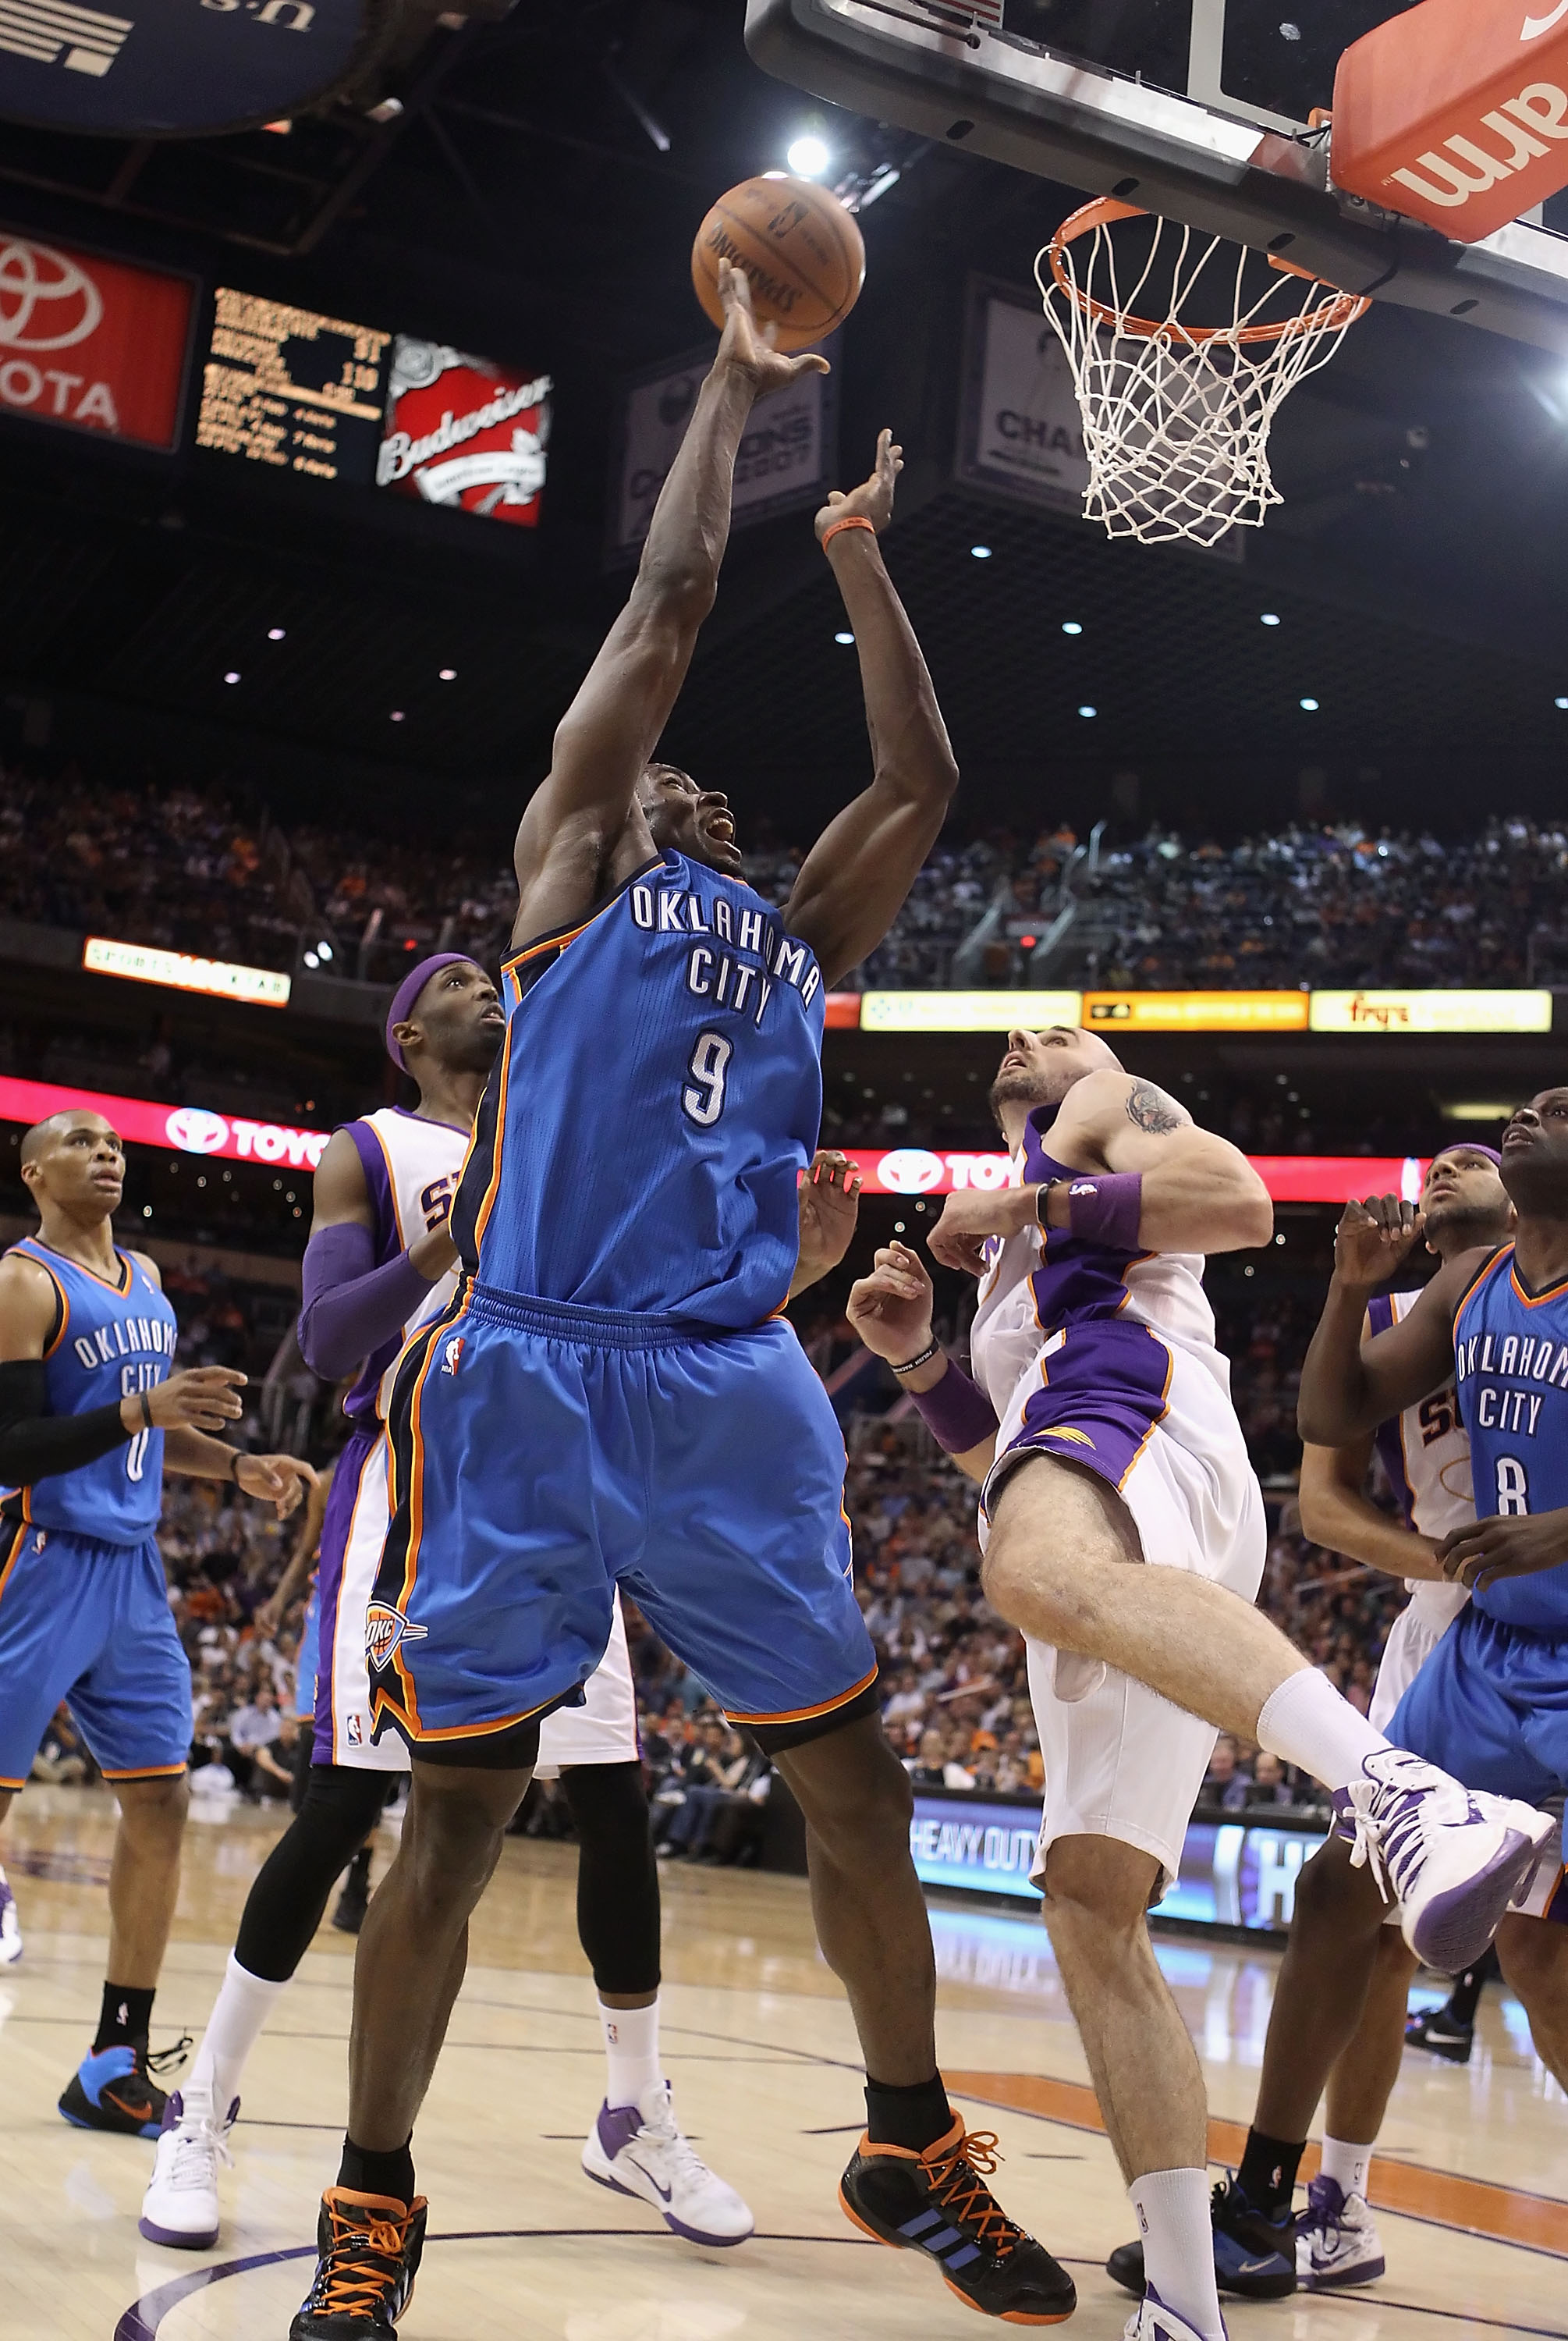 PHOENIX, AZ - MARCH 30:  Serge Ibaka #9 of the Oklahoma City Thunder puts up a shot during the NBA game against the Phoenix Suns at US Airways Center on March 30, 2011 in Phoenix, Arizona. The Thunder defeated the Suns 116-98.   NOTE TO USER: User express